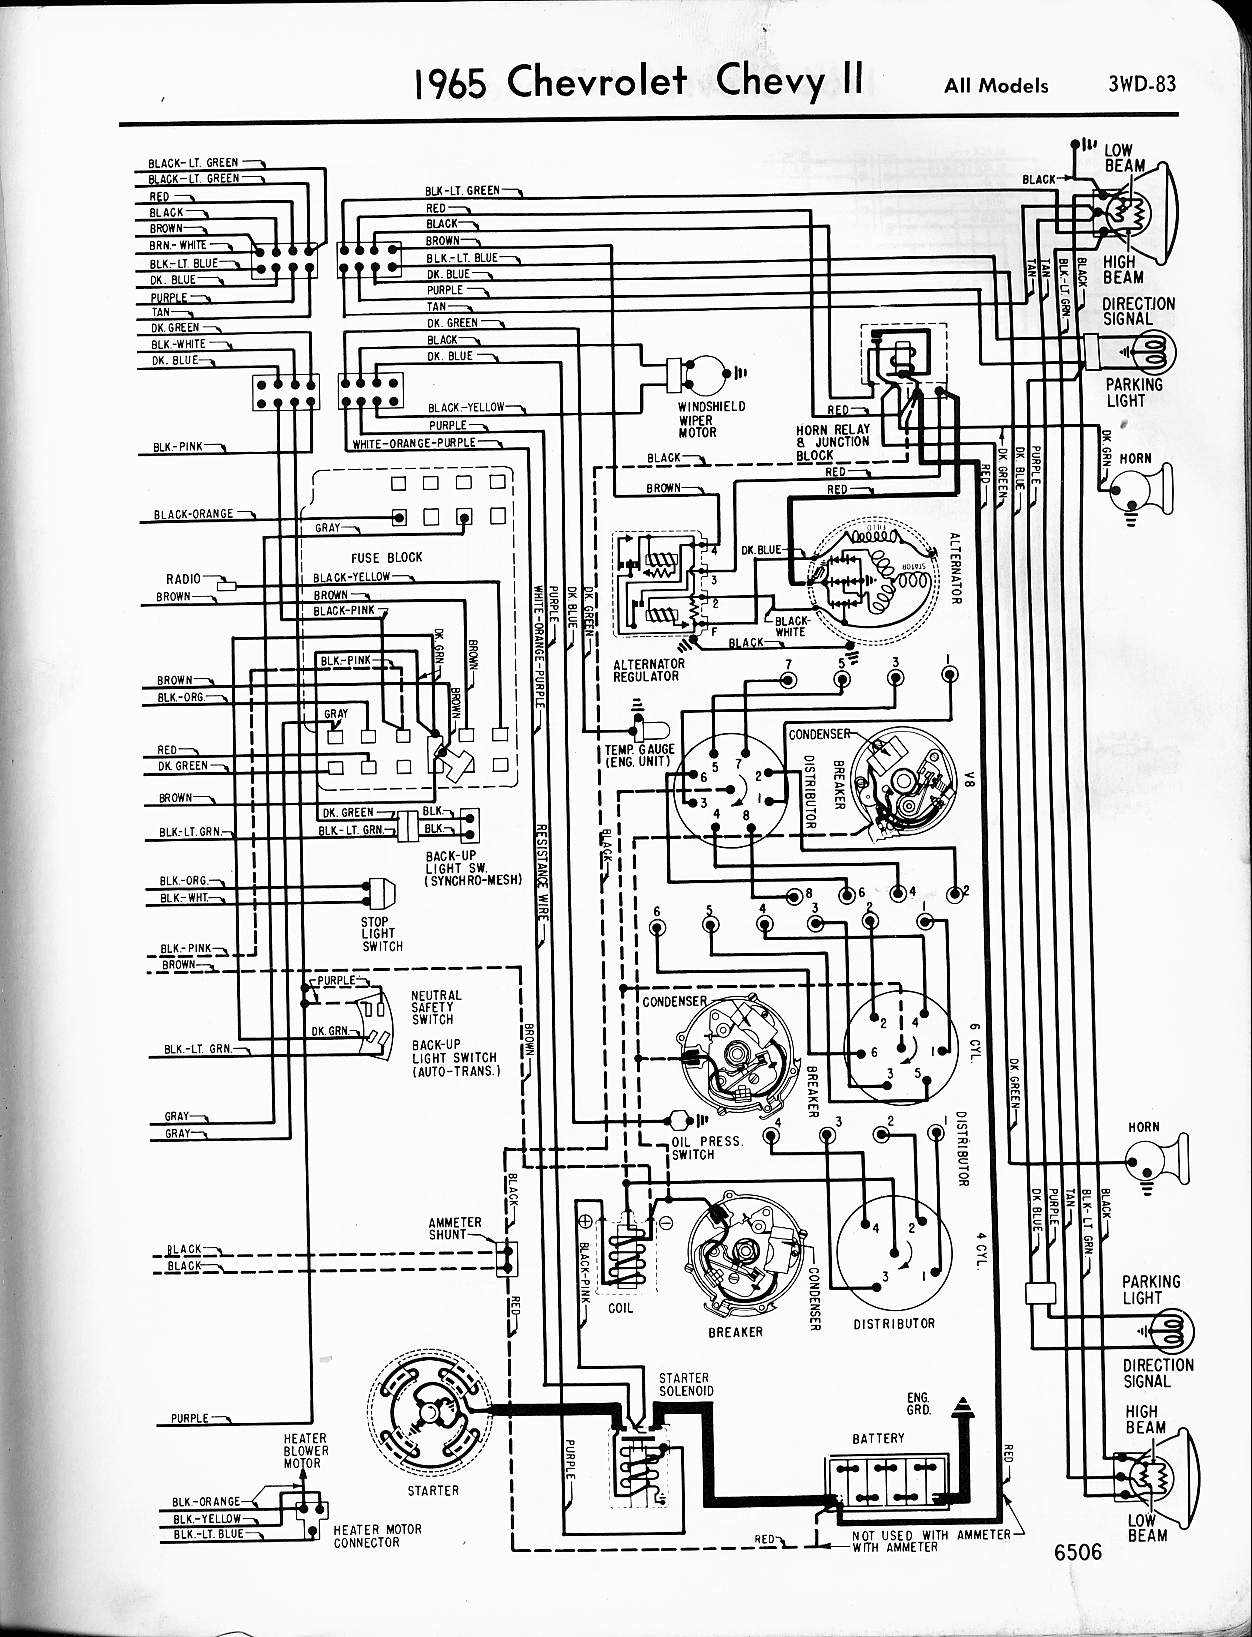 57 65 chevy wiring diagrams1965 chevy ii (all models) right